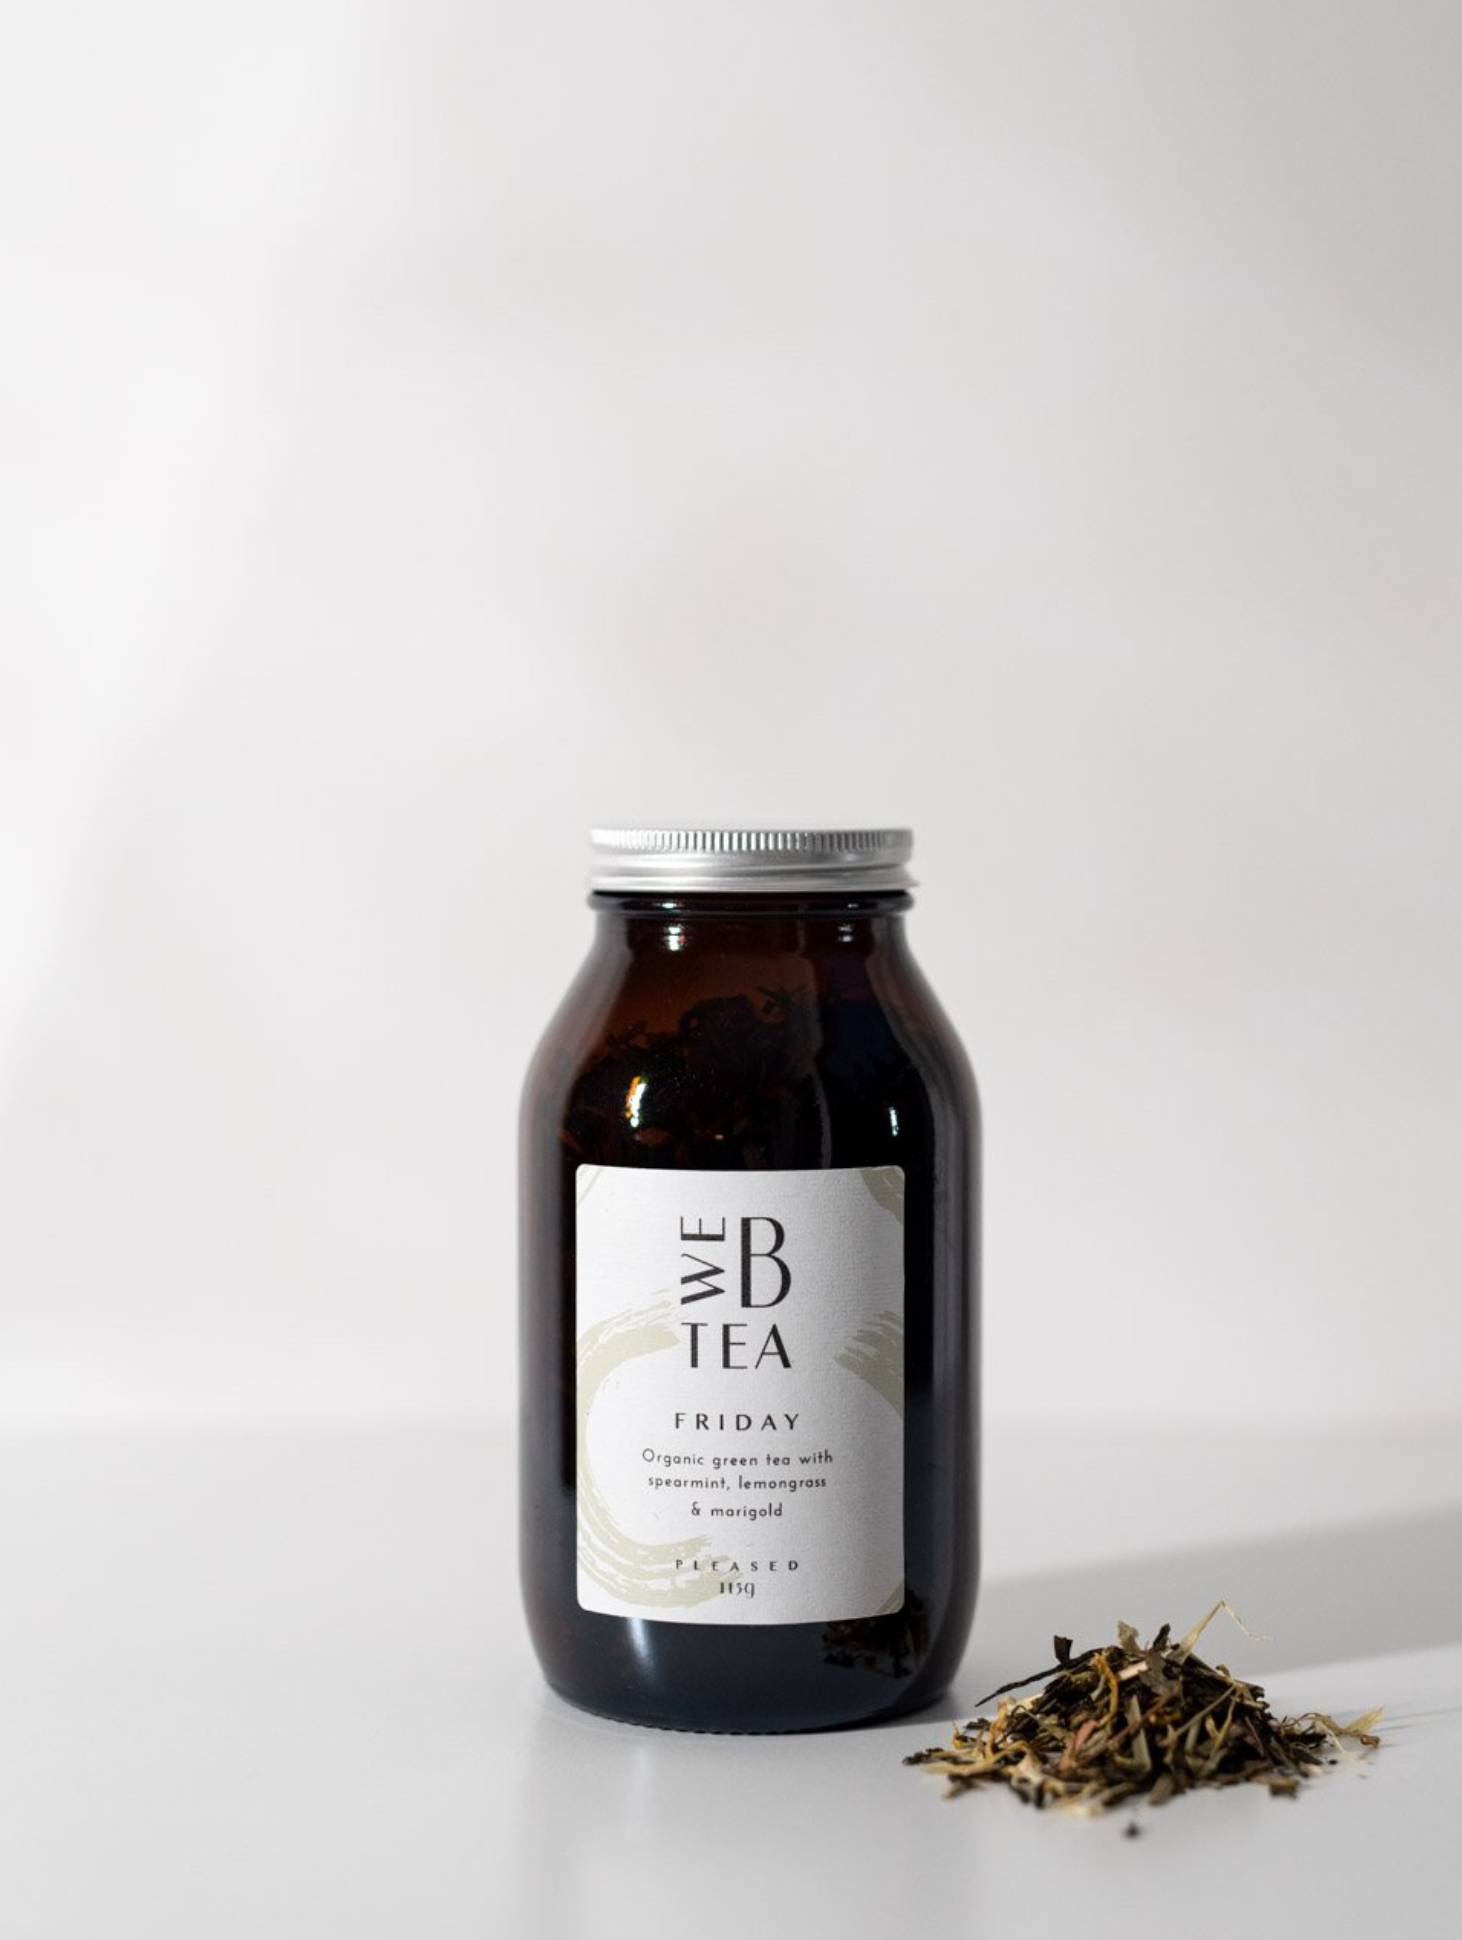 Fredags te 115g We B Tea